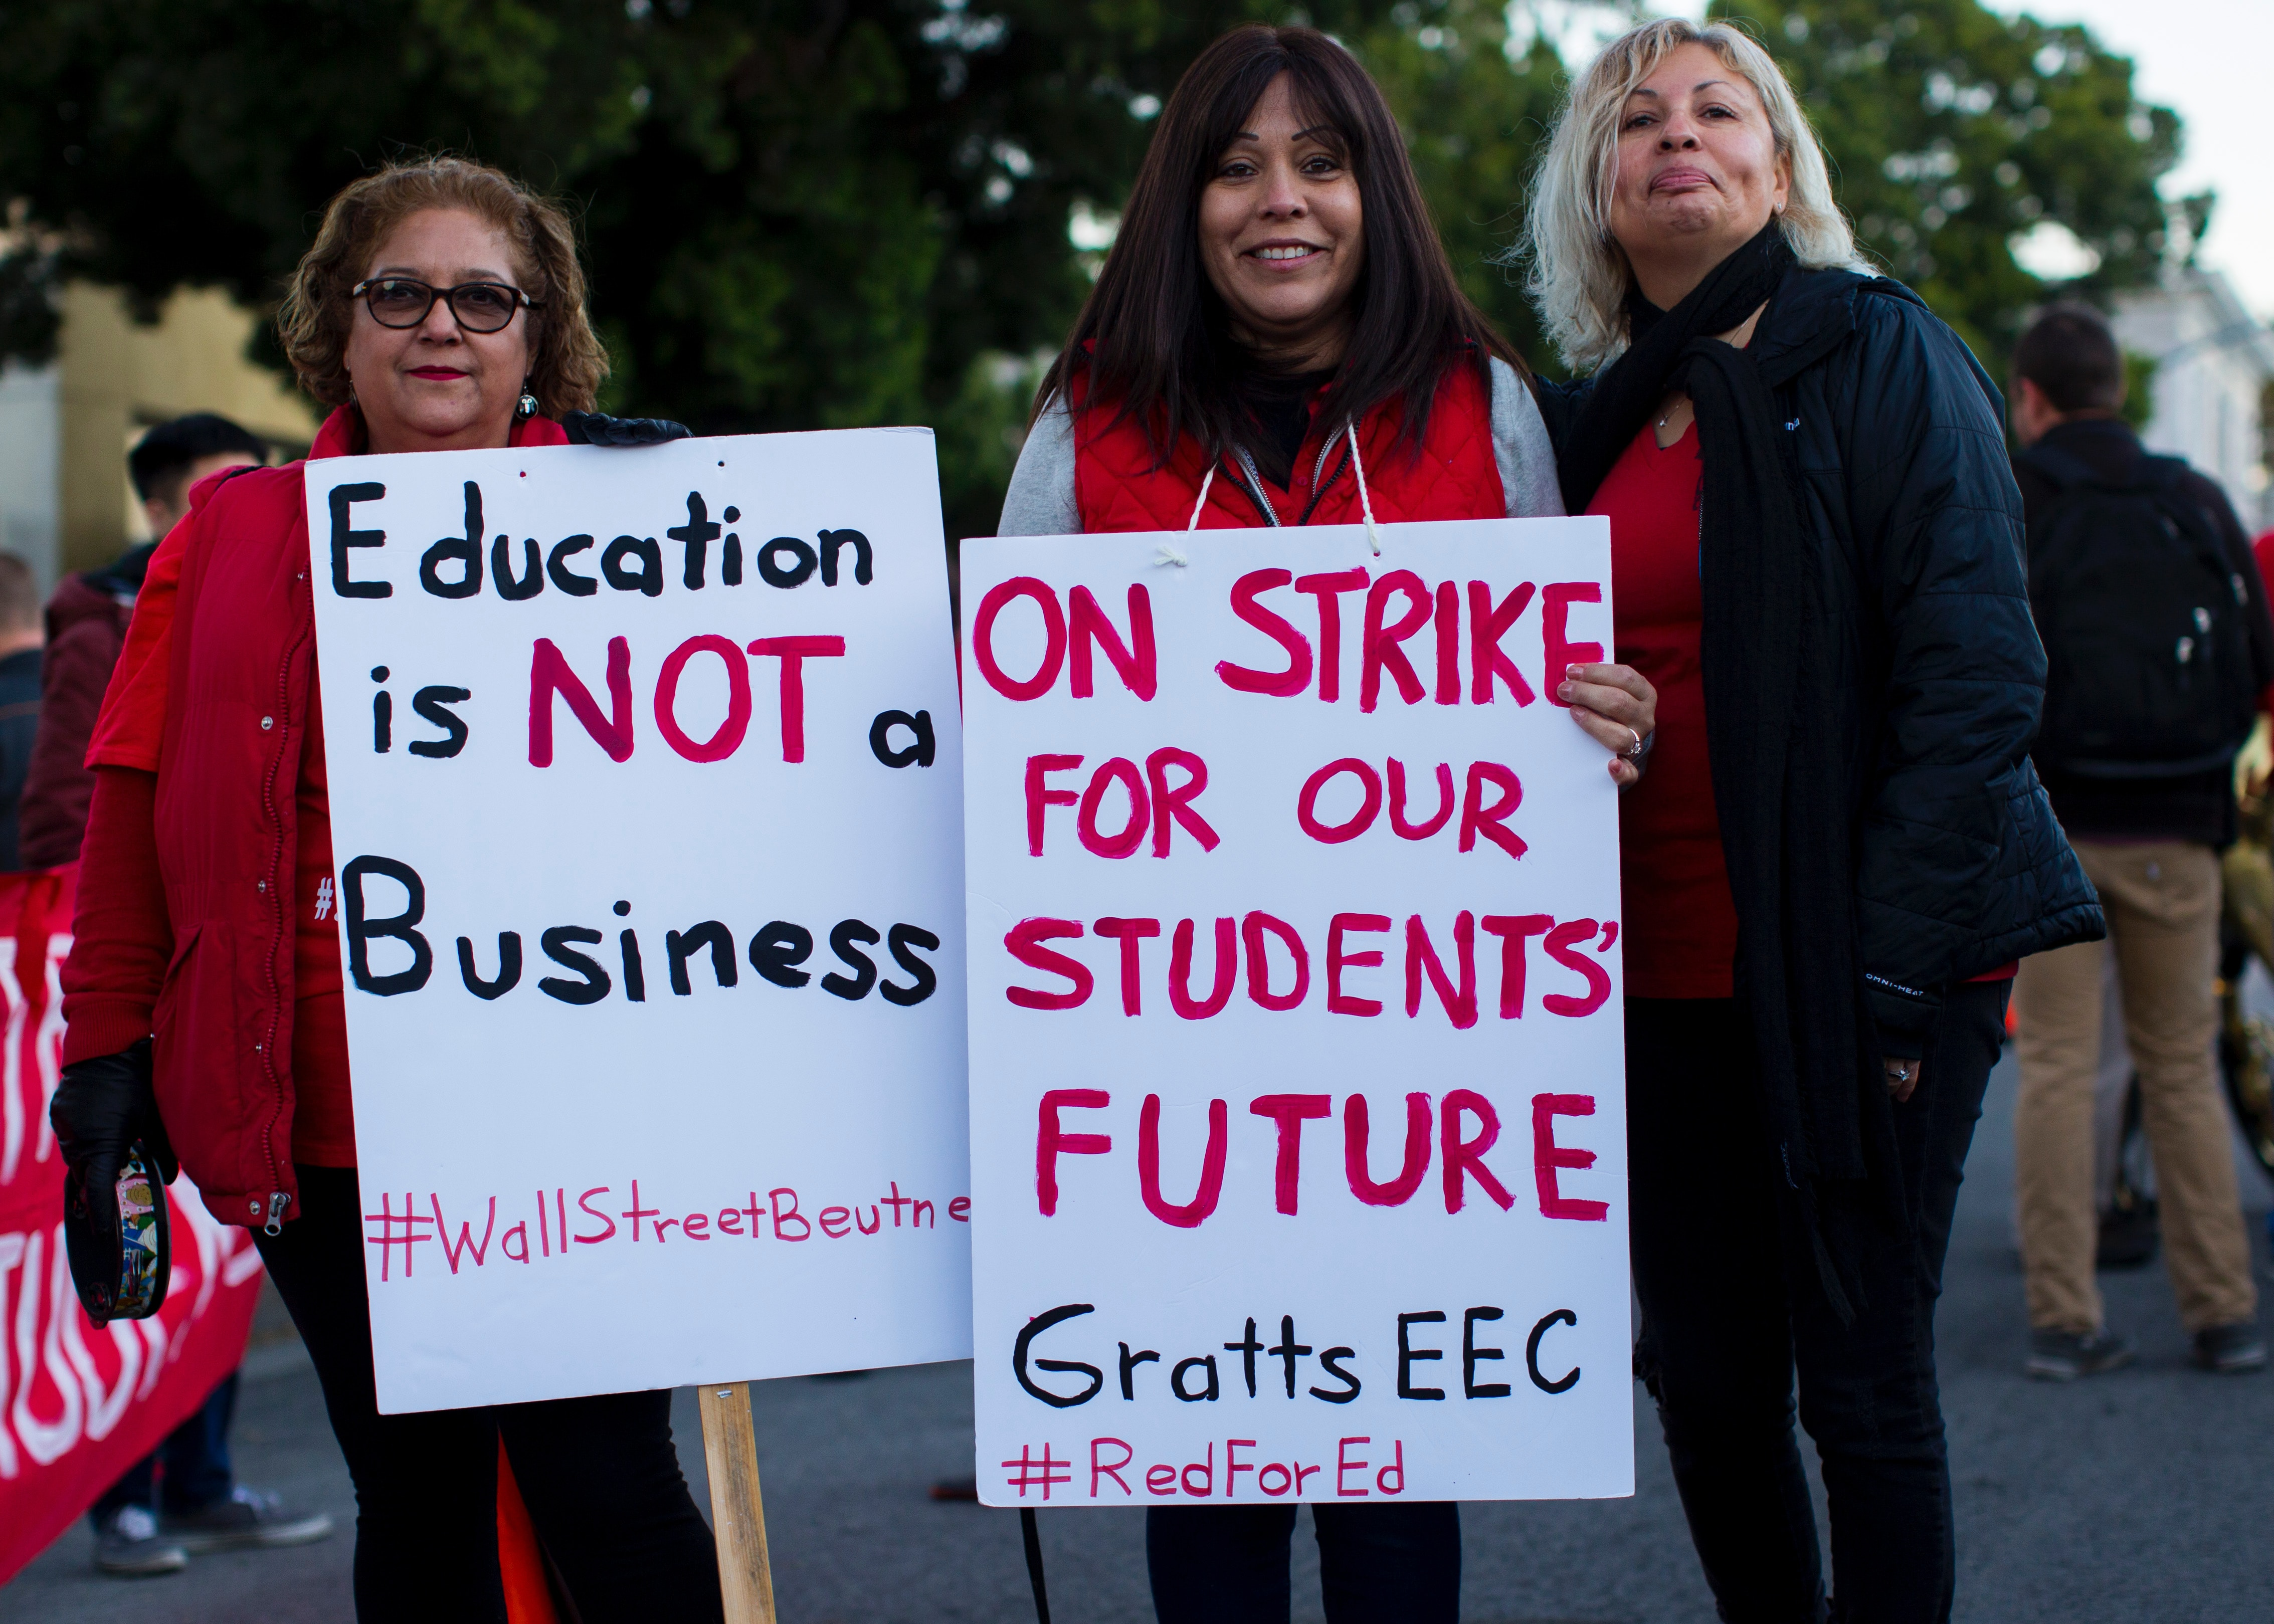 Teacher standing with signs on strike